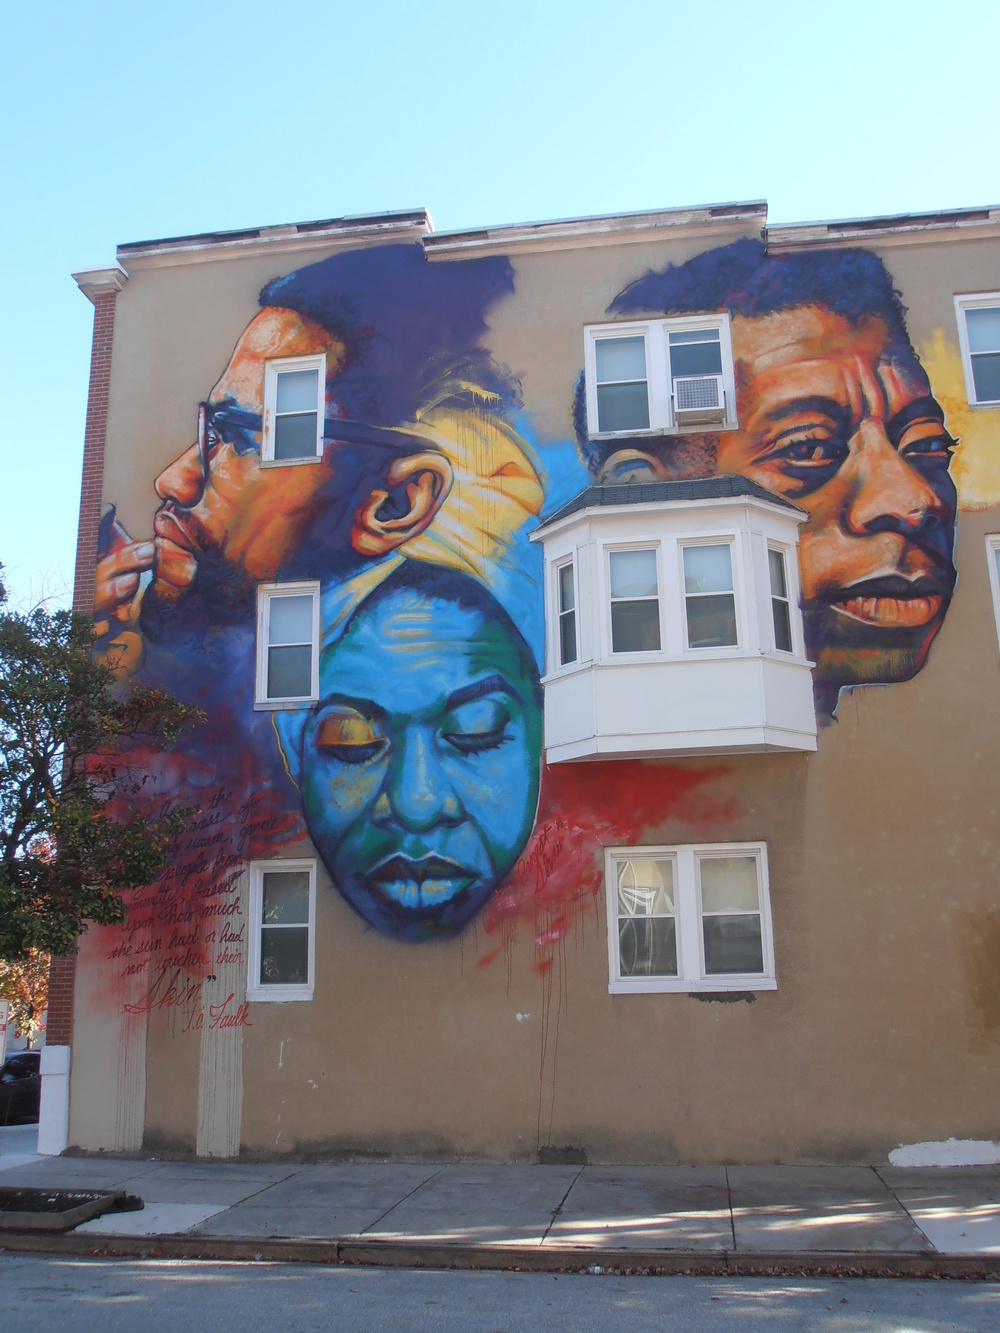 Mural by Ernest Shaw, Baltimore 401 East Lafayette Street    http://www.examiner.com/article/baltimore-artist-creates-images-to-uplift-communities